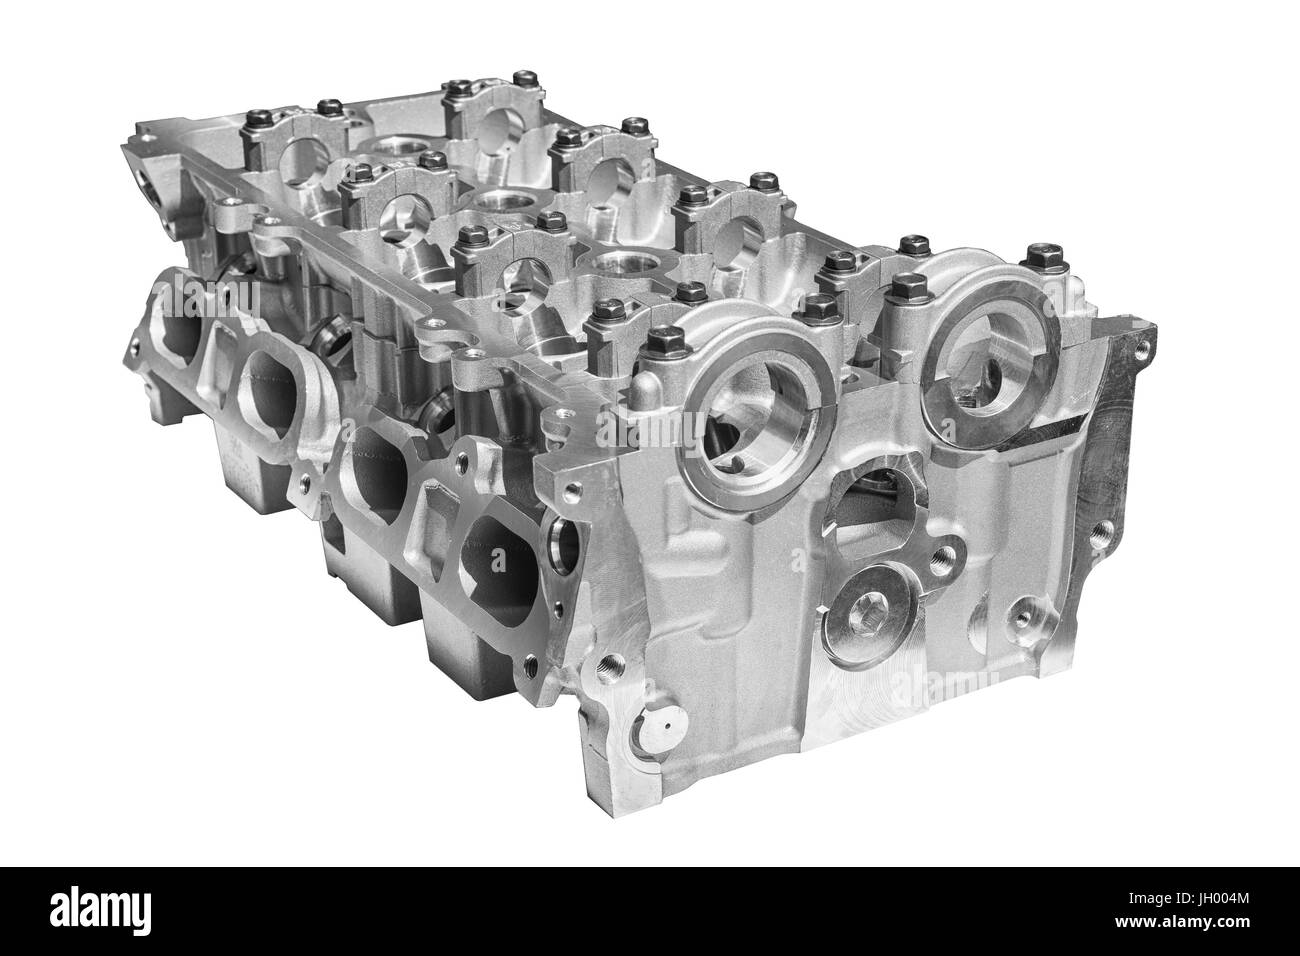 Cylinder head combustion engine - Stock Image